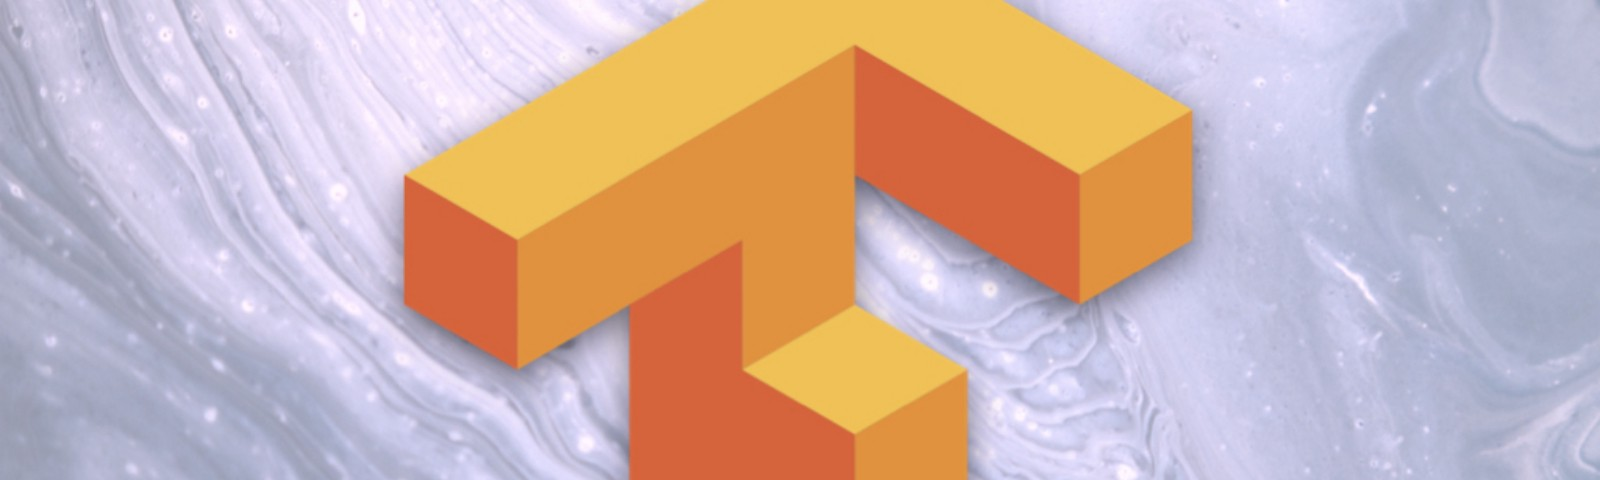 TensorFlow js: An intro and analysis with use cases - LogRocket Blog